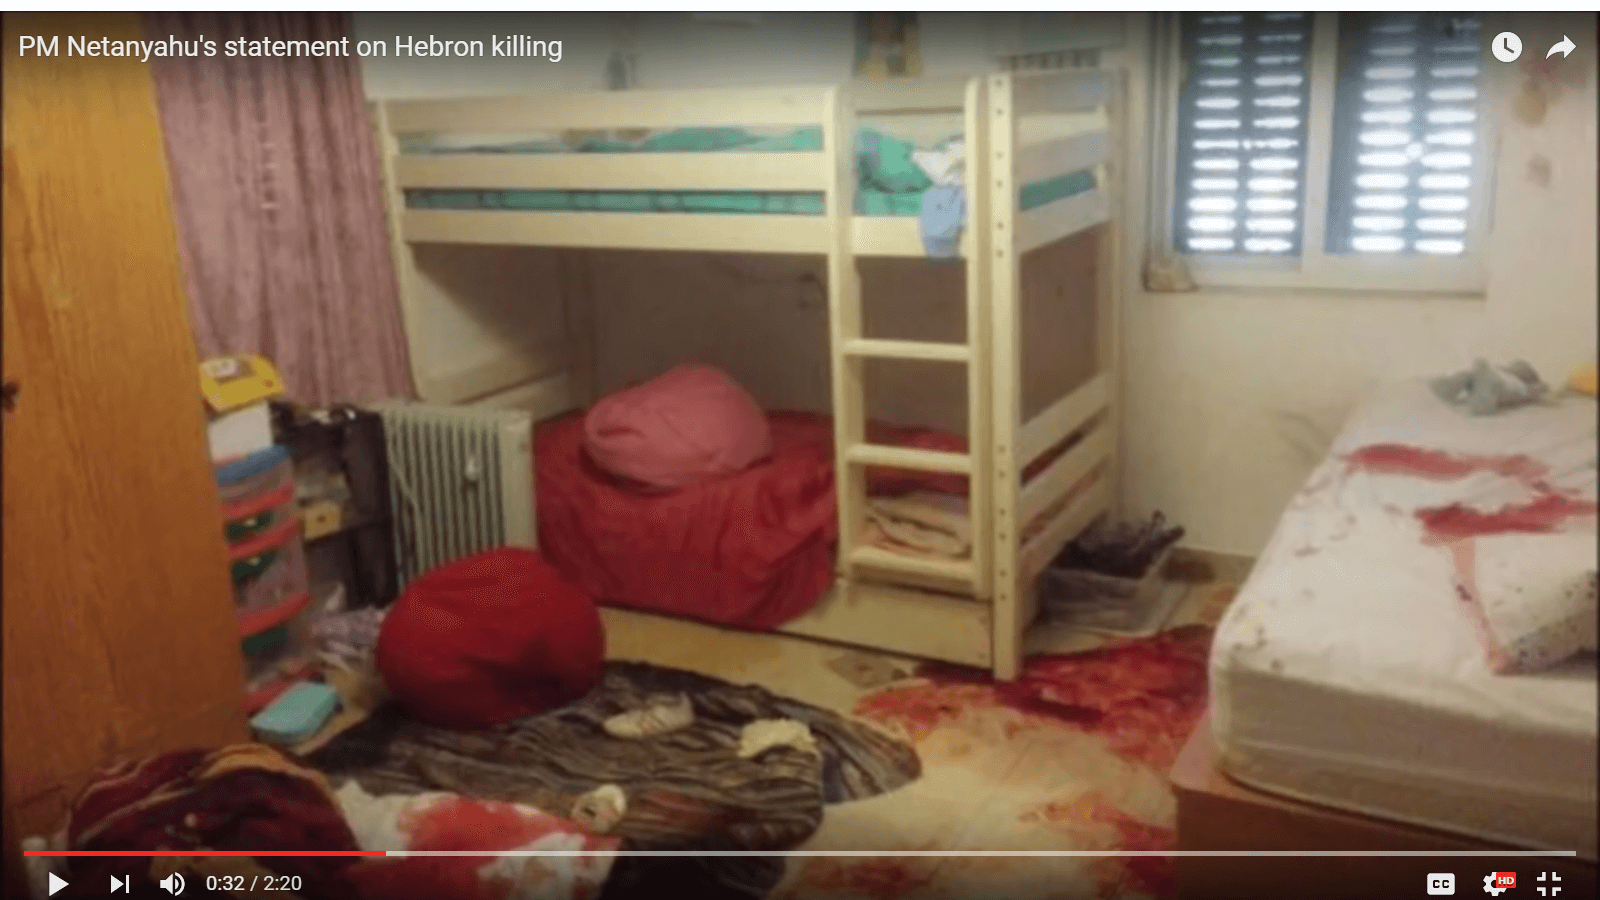 Netanyahu video showed bloodstained room of Hebron girl who was victim of Palestinian attack